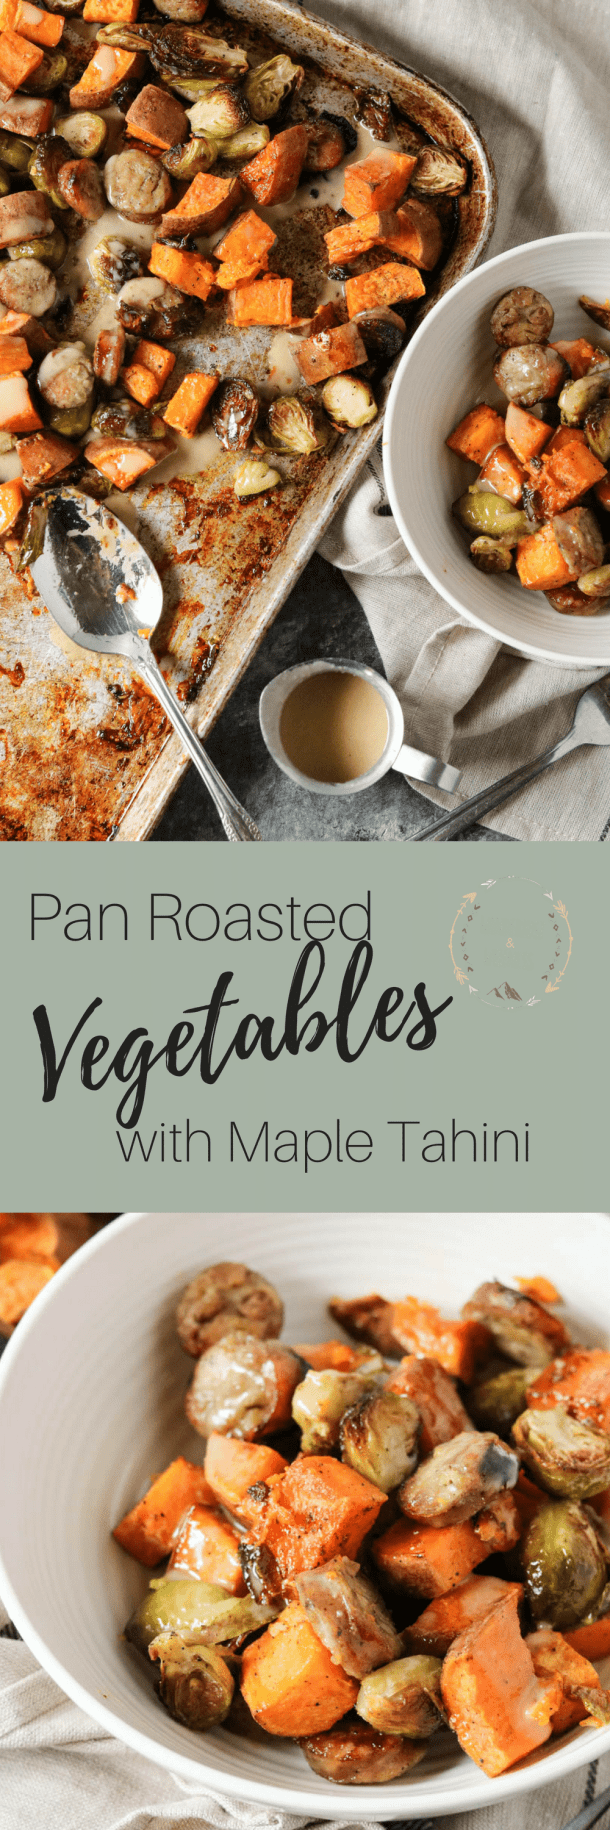 pan roasted vegetables with maple tahini